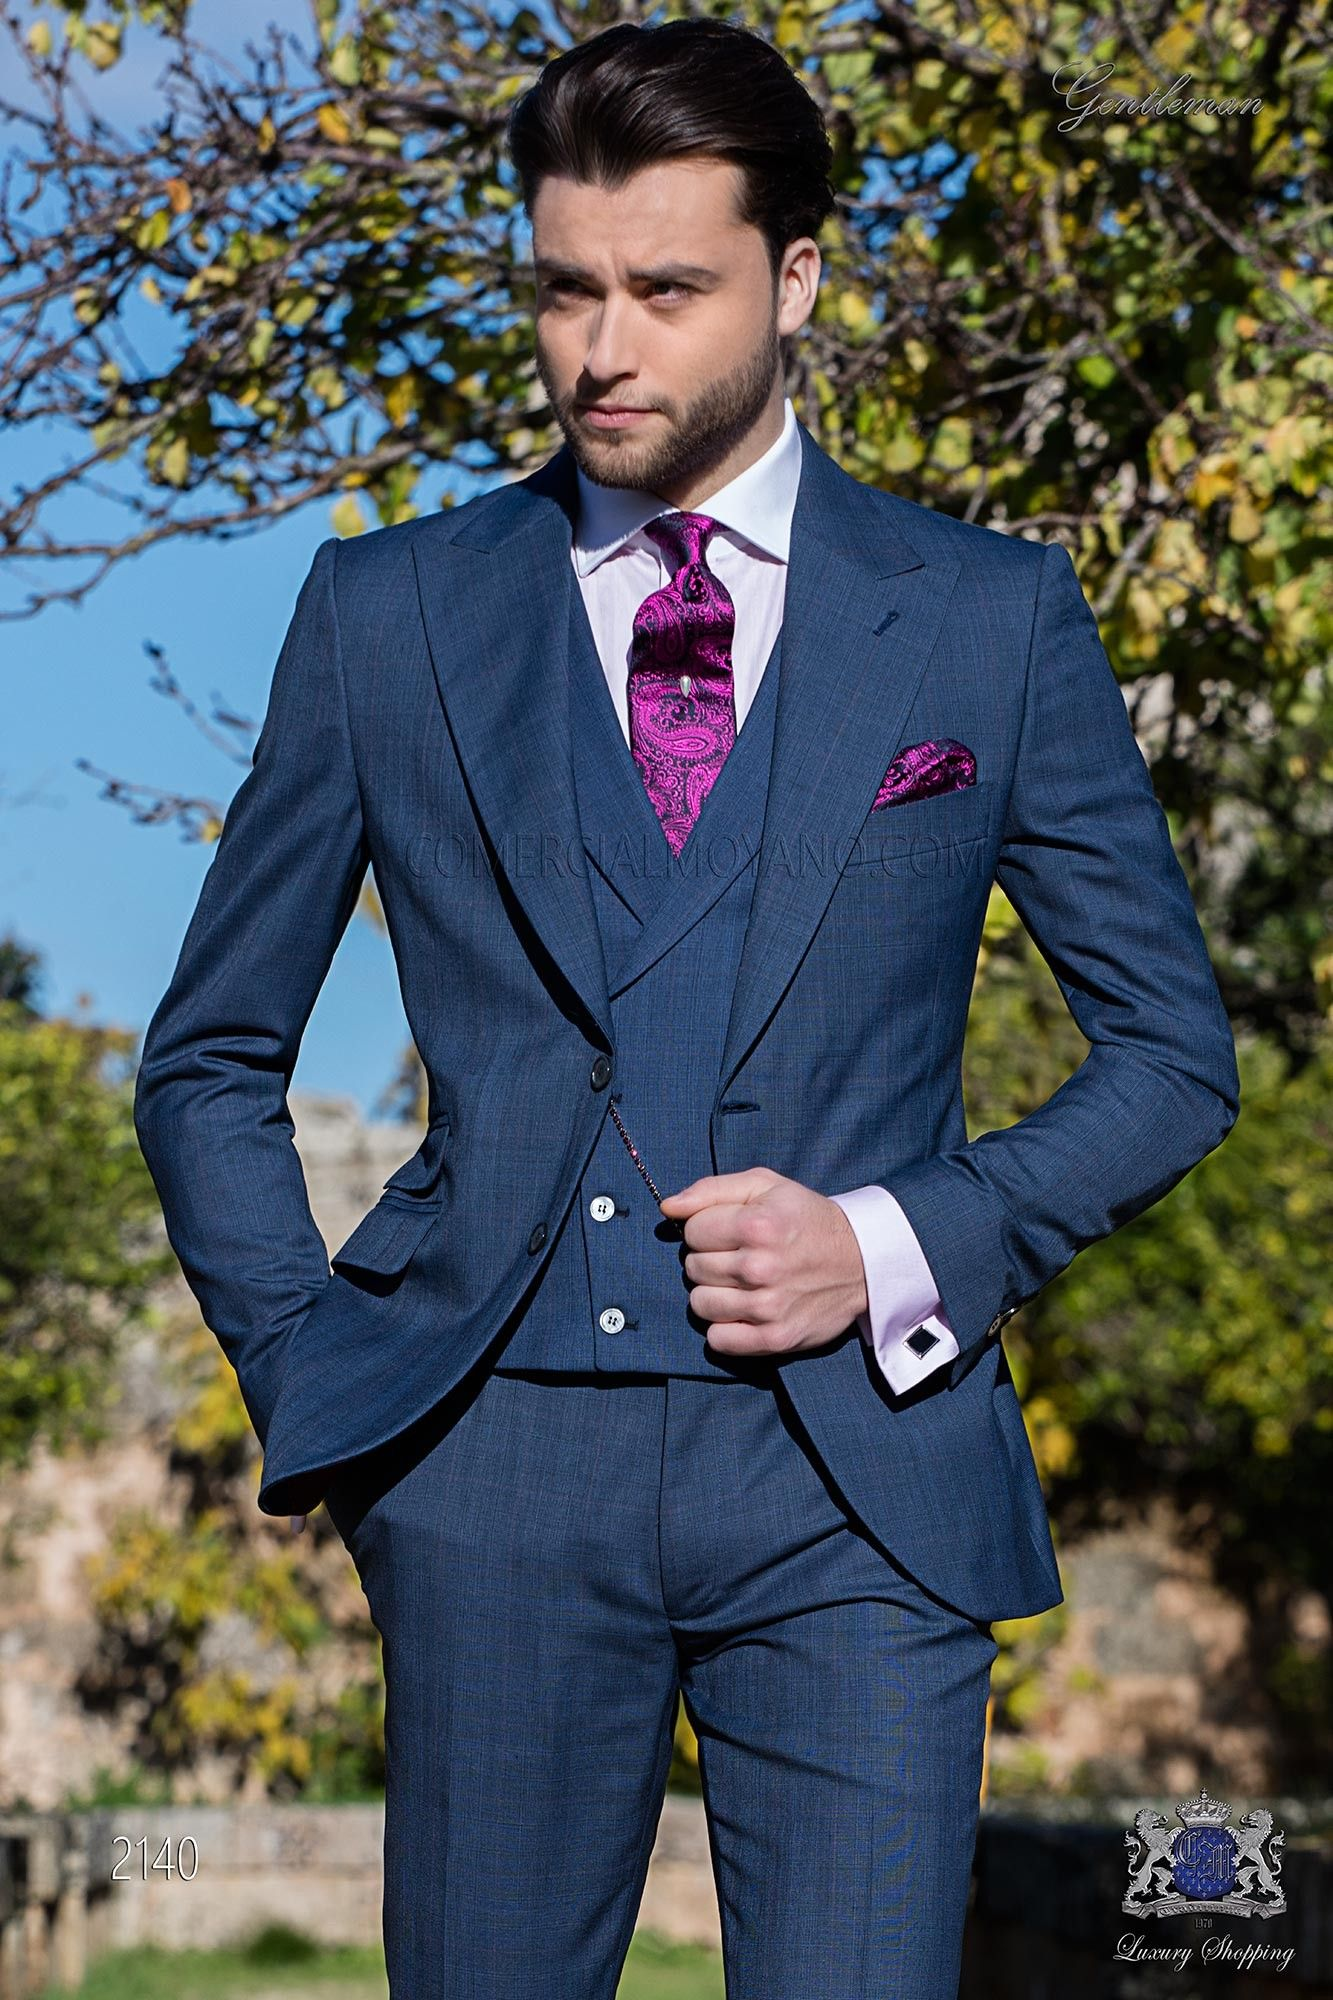 d033b49c2180 Bespoke Prince of Wales blue and red suit